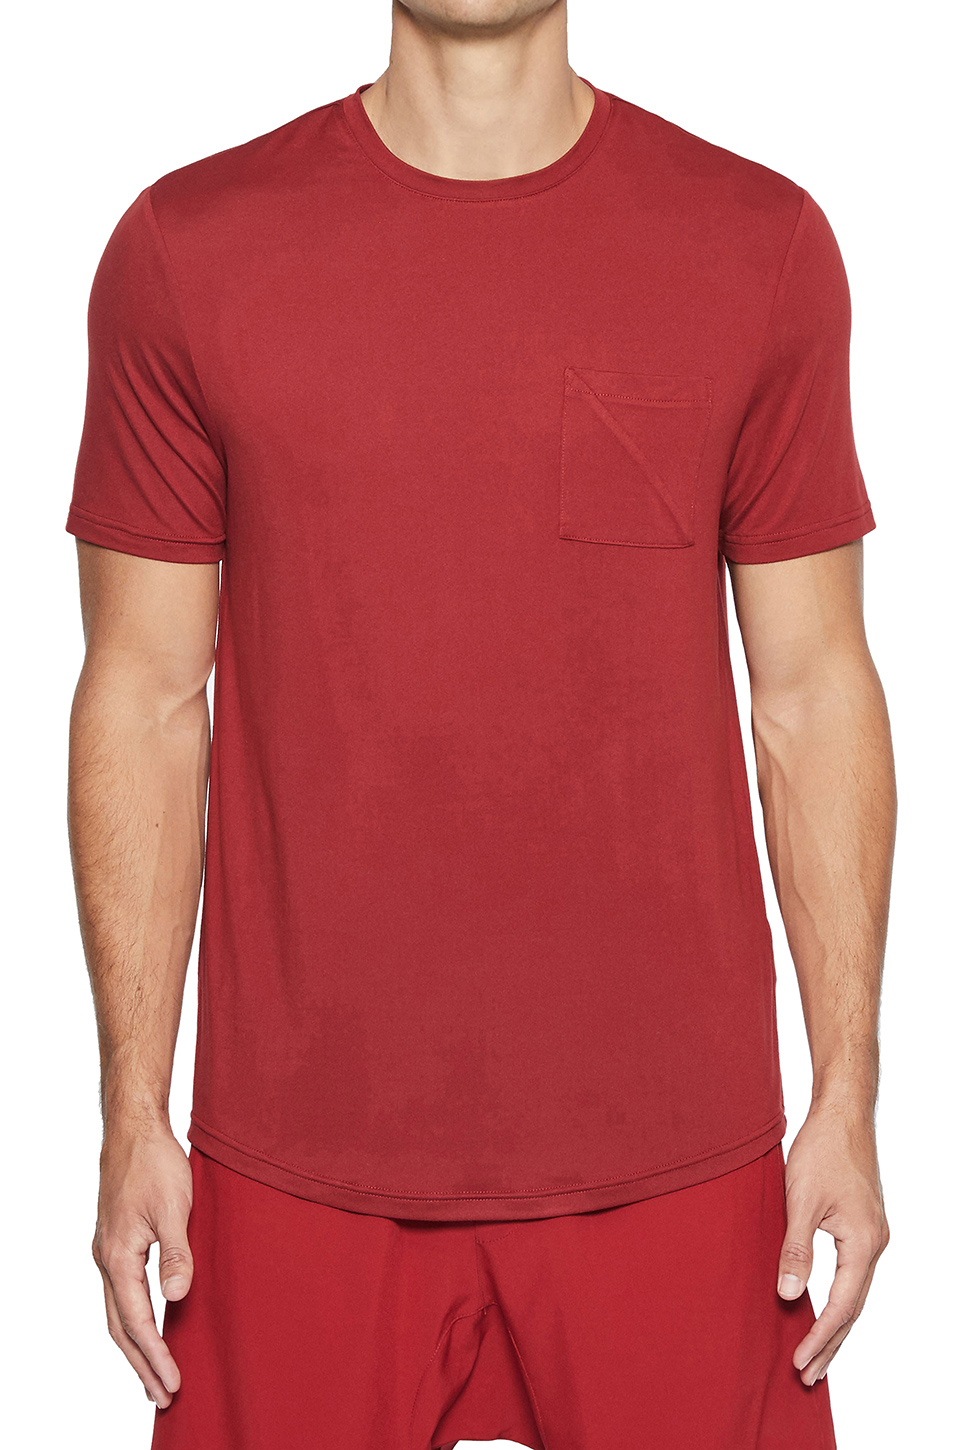 Grand AC Jonas Tee in Red